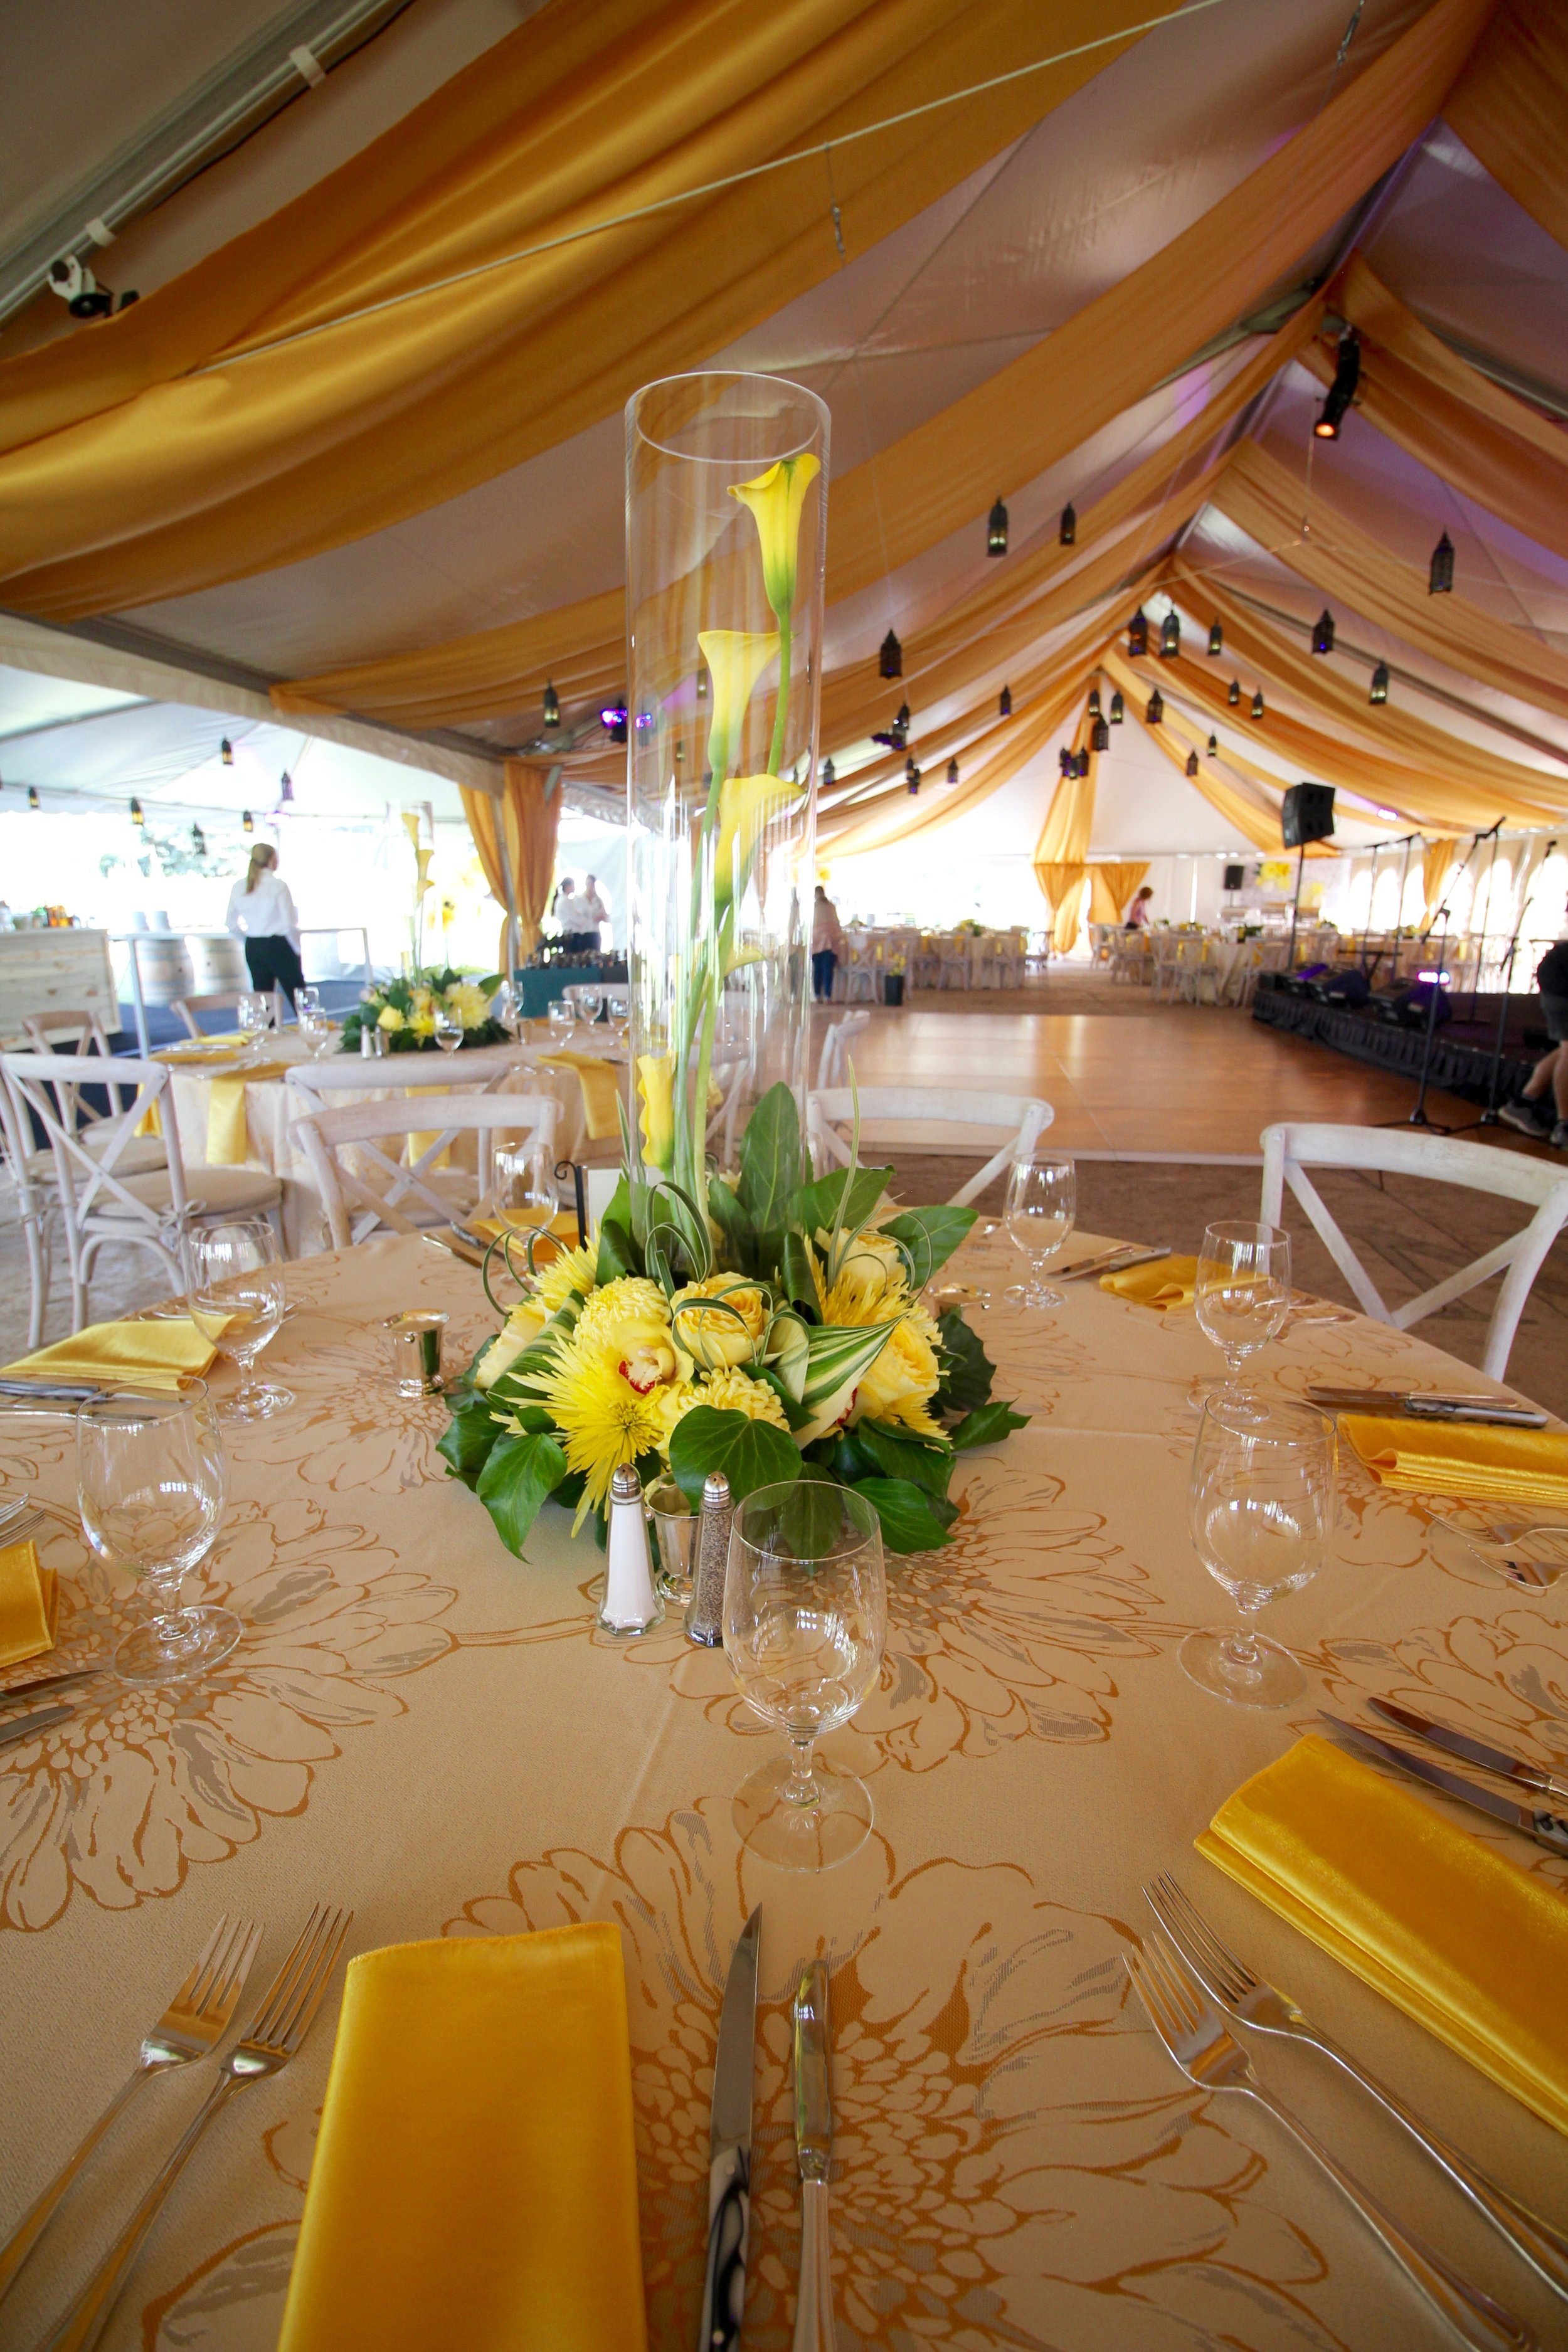 Custom designs delivered weekly and bi-weekly to your home or business is a PoP specialty.We have extensive experience providing spectacular centerpieces, archways, and other floral decor to compliment your home or elevate your event. -